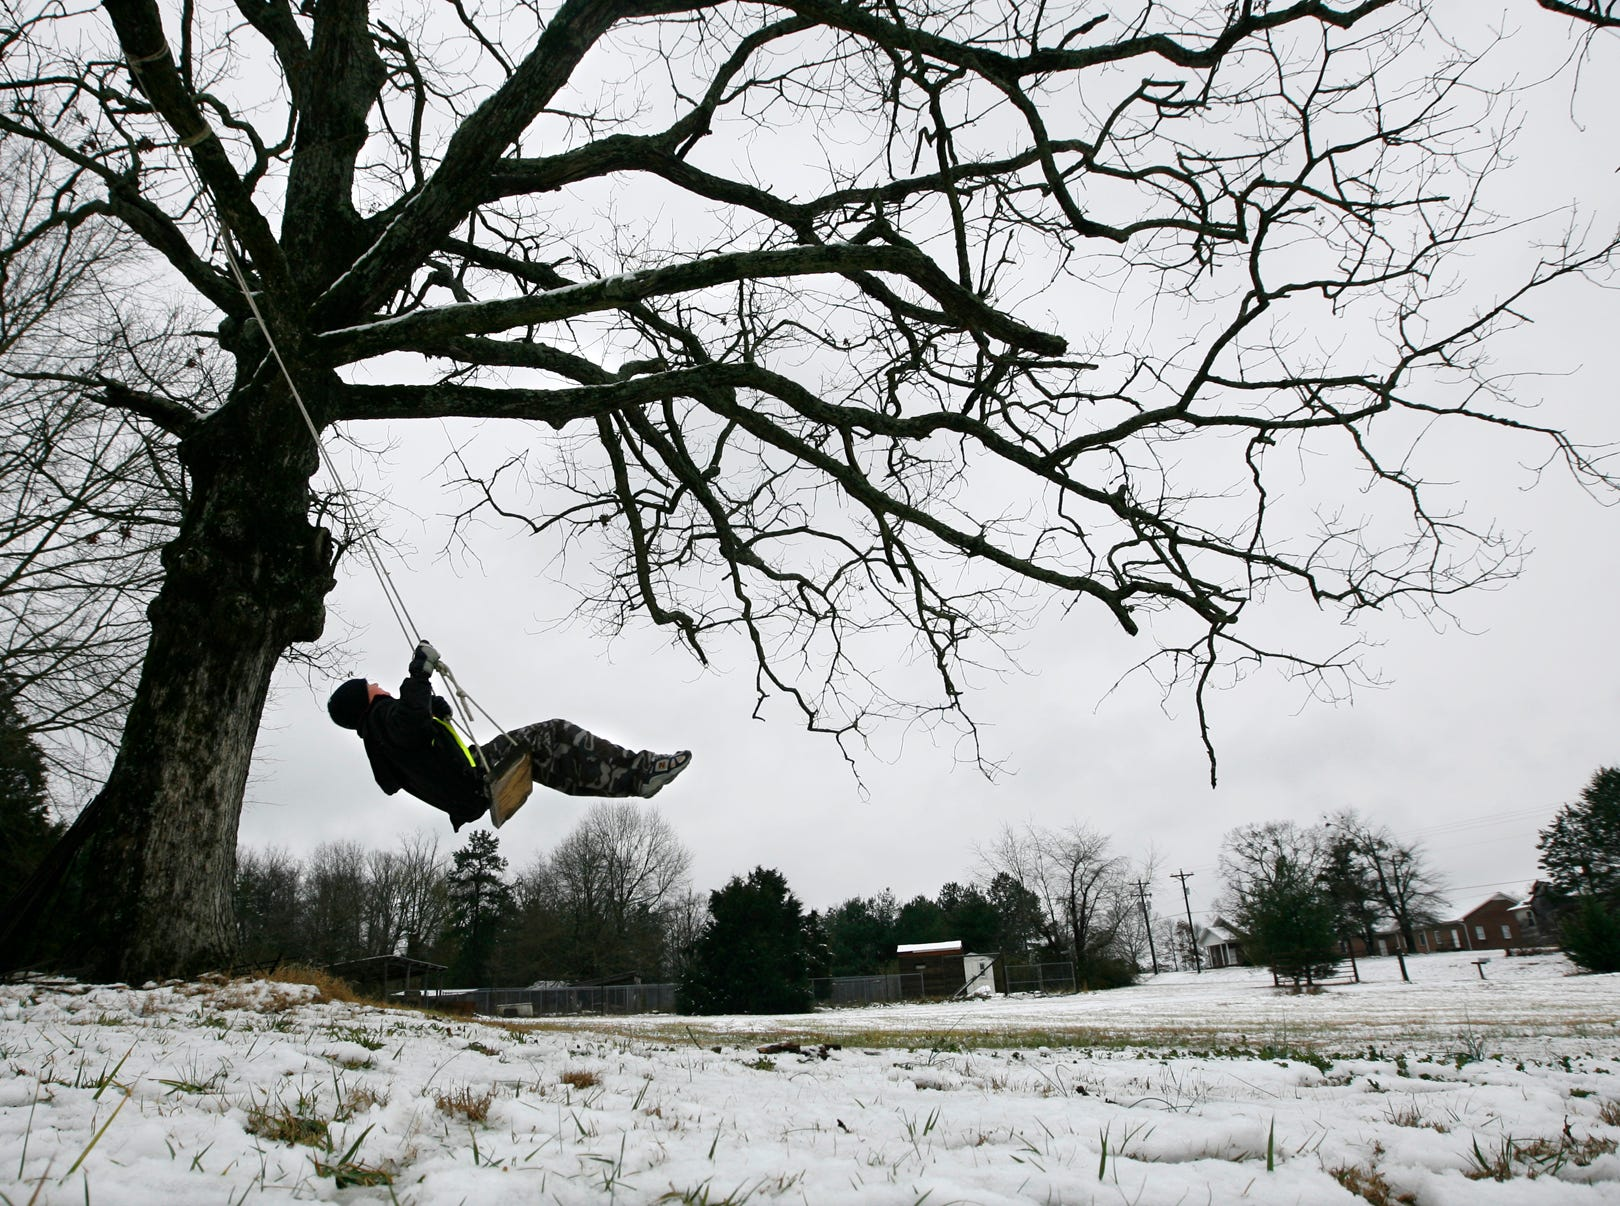 Ethan King, 12, of Townville swings in his front yard Thursday after a storm left the area with a blanket of white snow.   Many children and adults could spend time in the snow since area schools cancelled classes for the day in 2008.